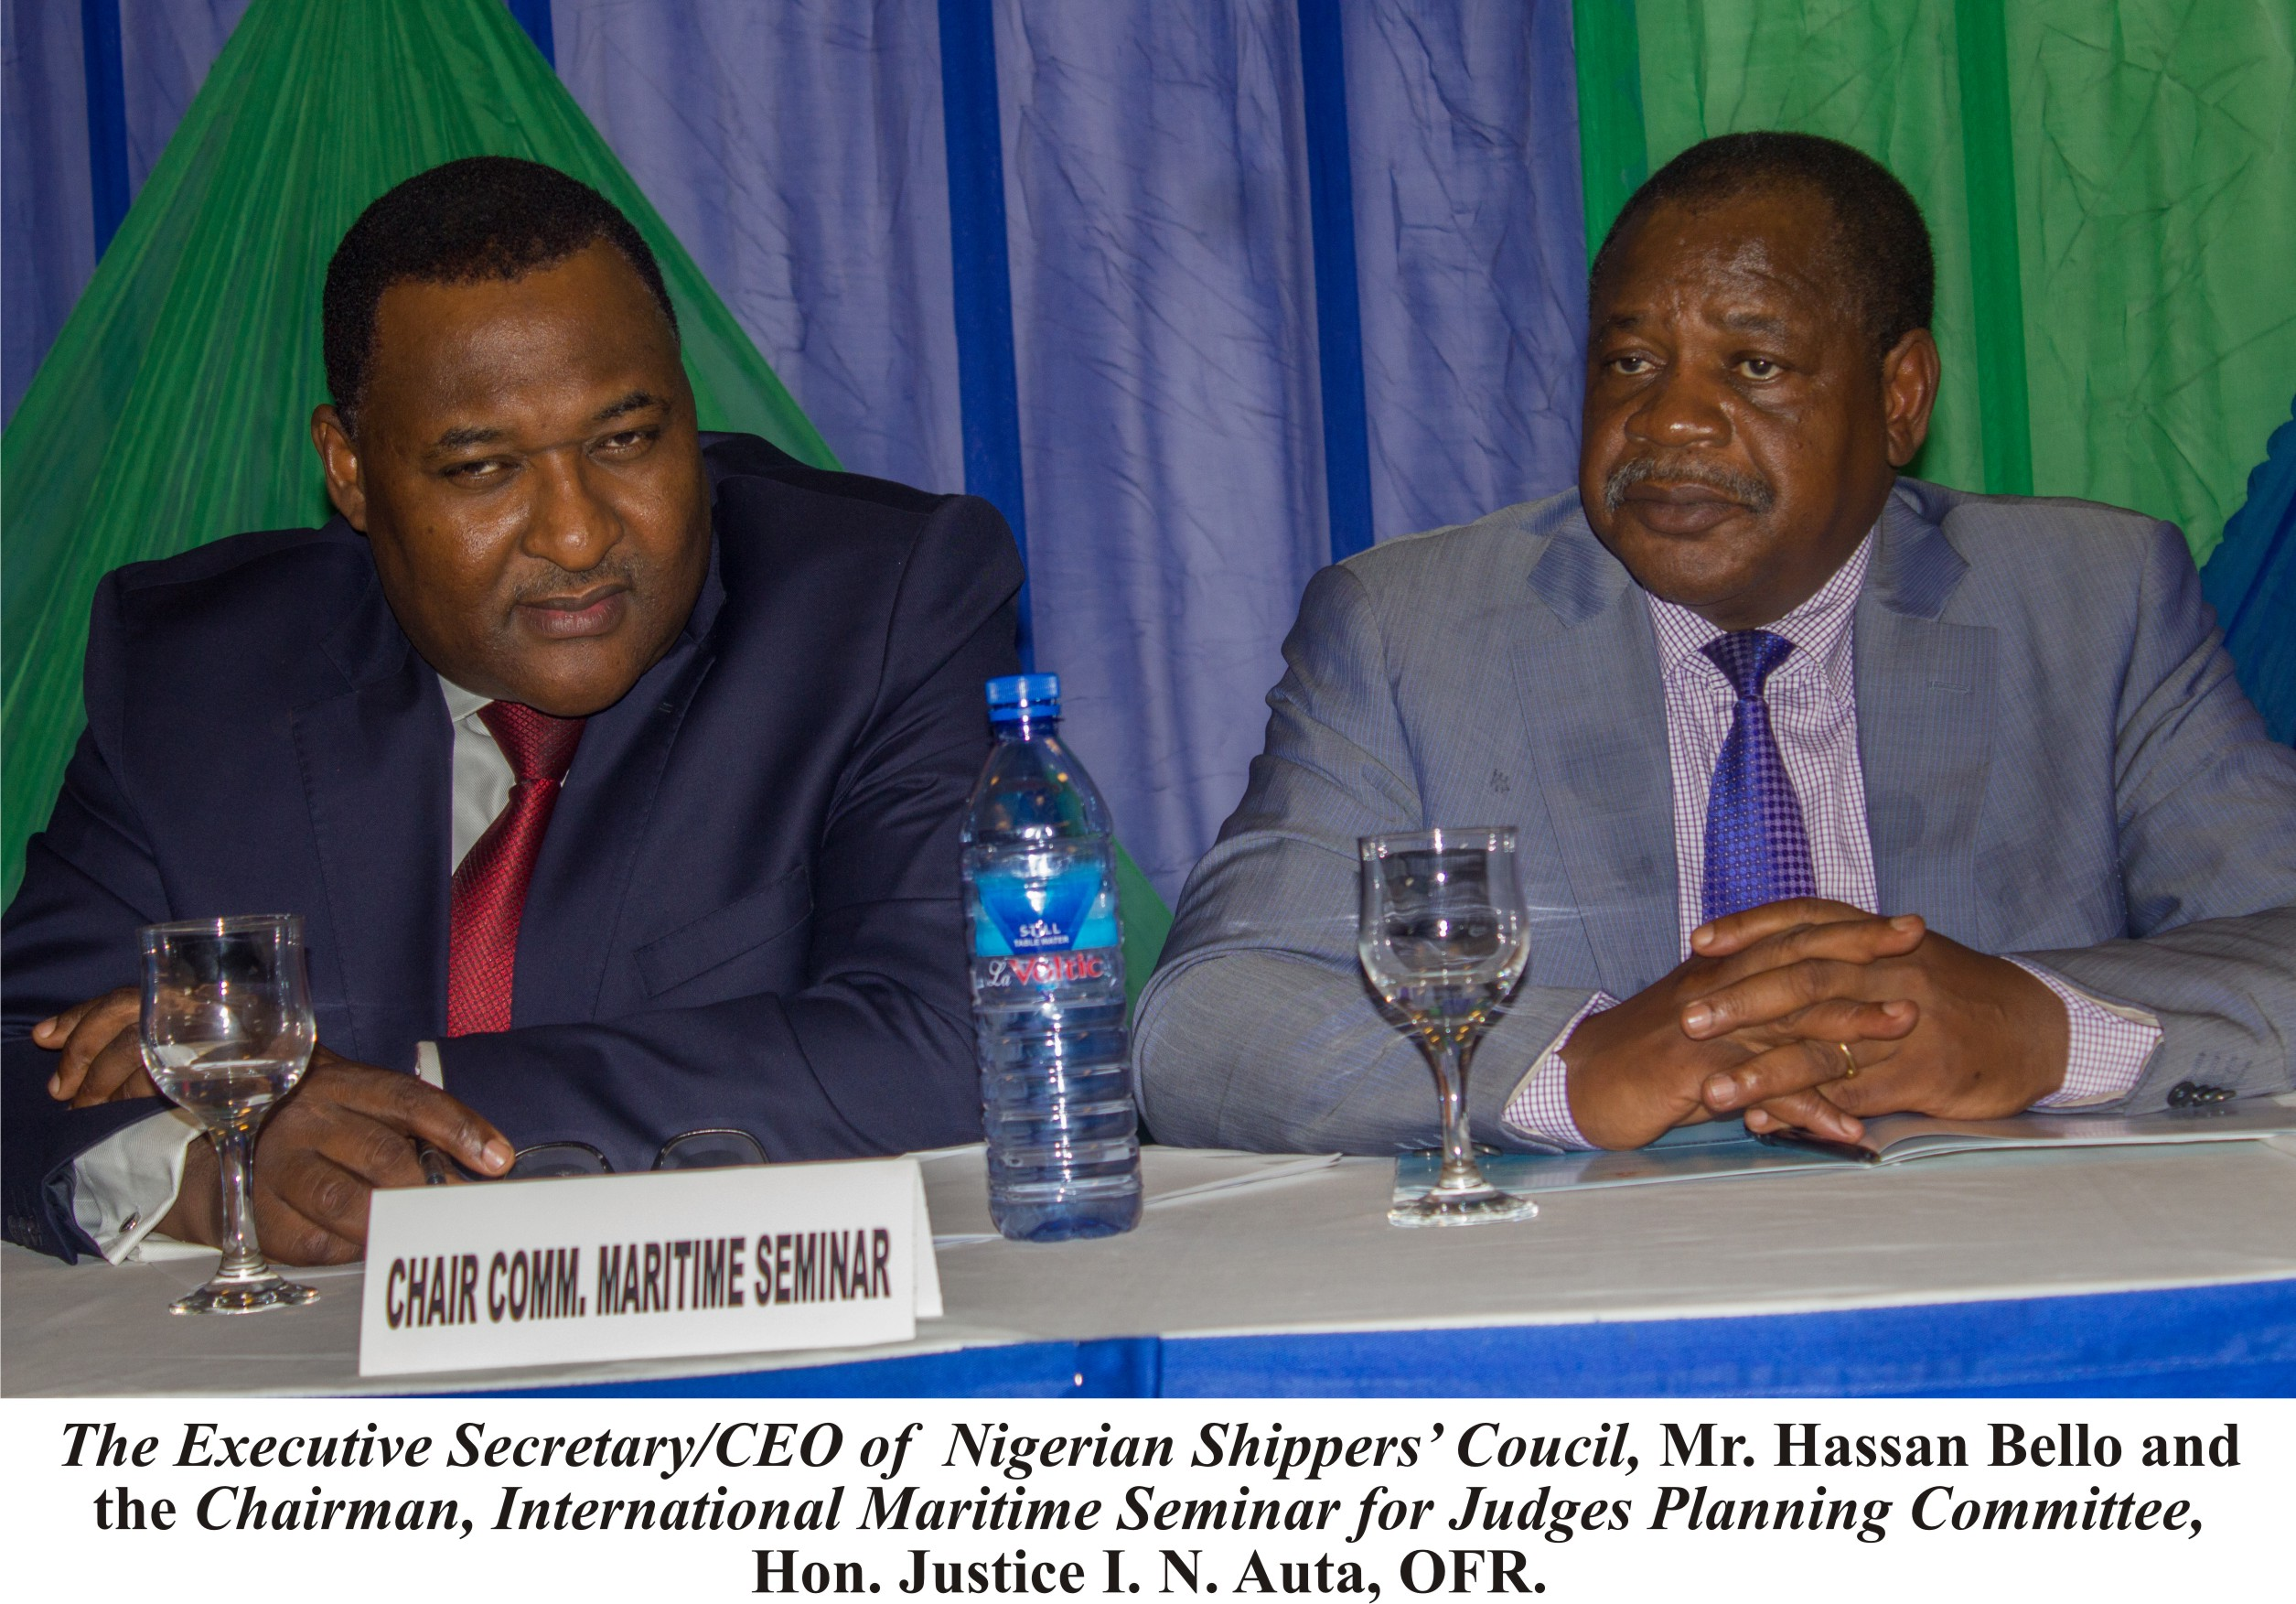 The Impression from the 15th Edition of the Maritime Seminar for Judges organised by the Nigerian Shippers' Council in 2018 at Abuja